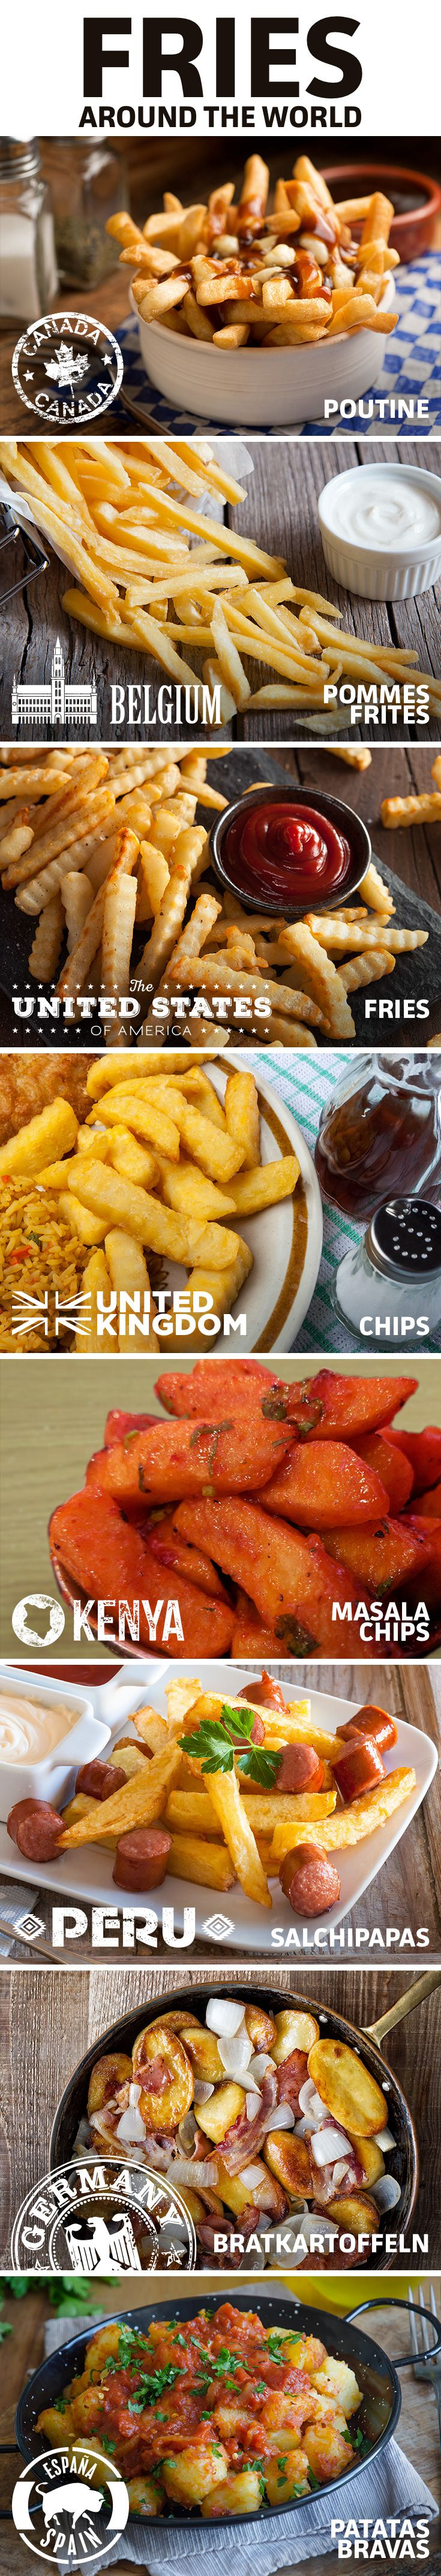 Check out fries from around the world.